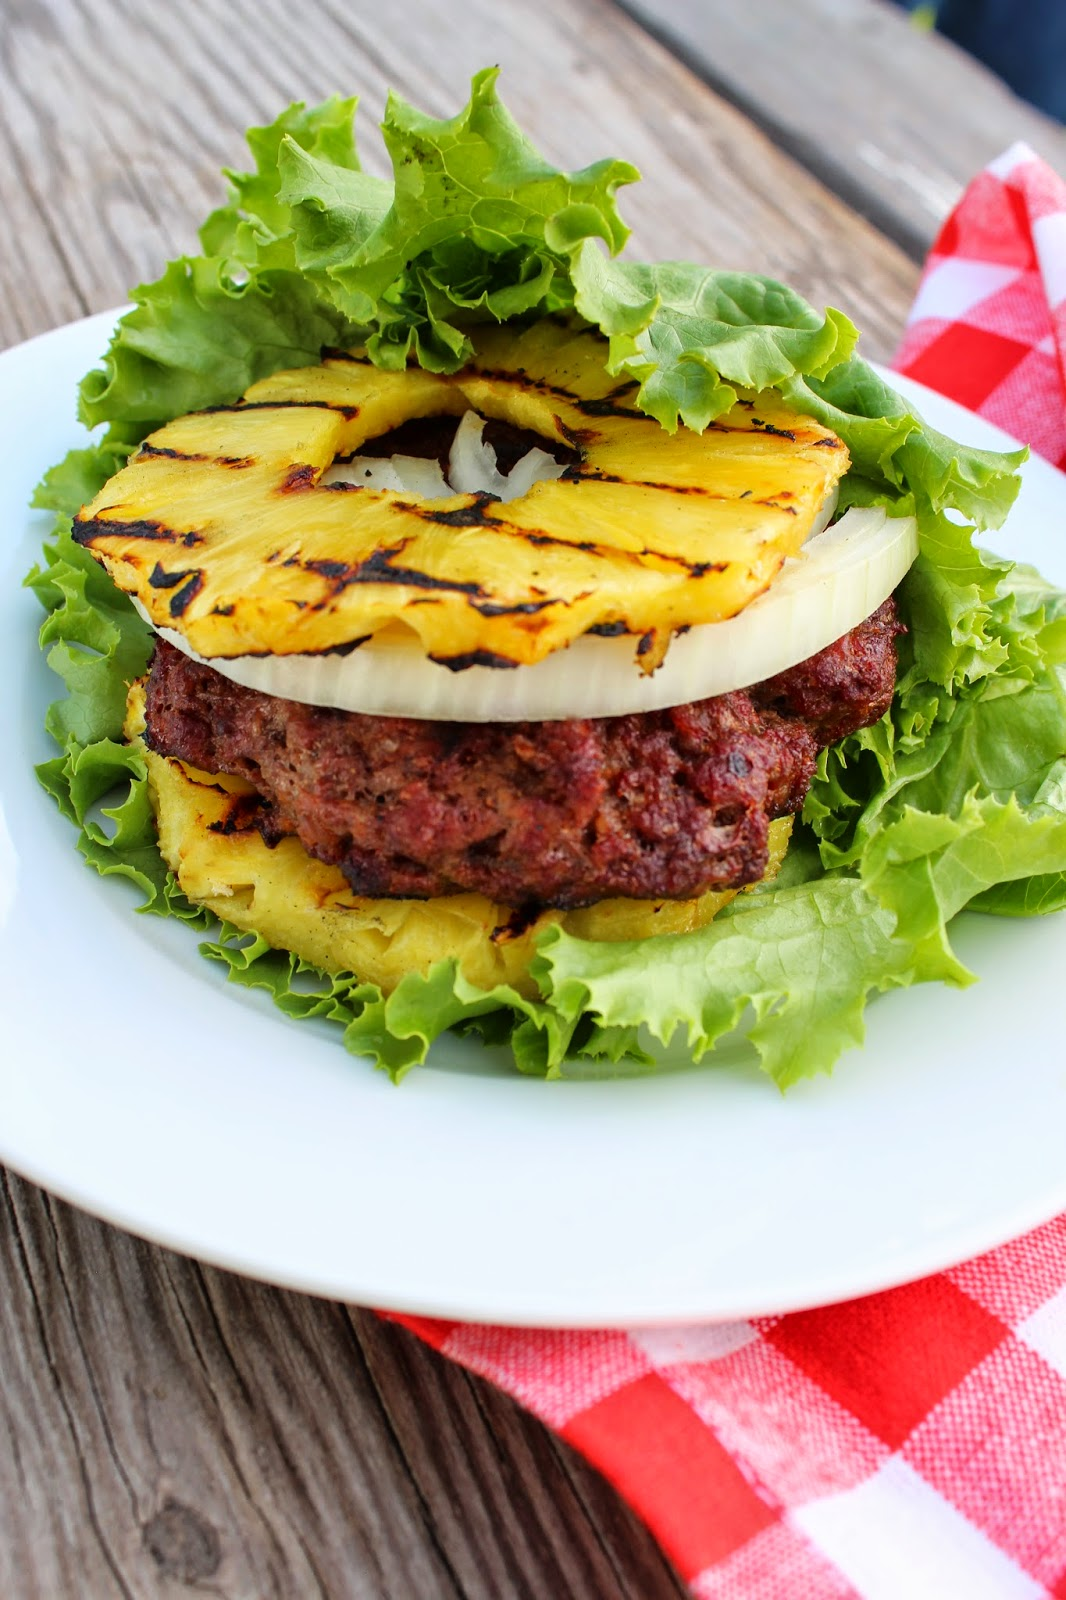 Grilled Pineapple Burger